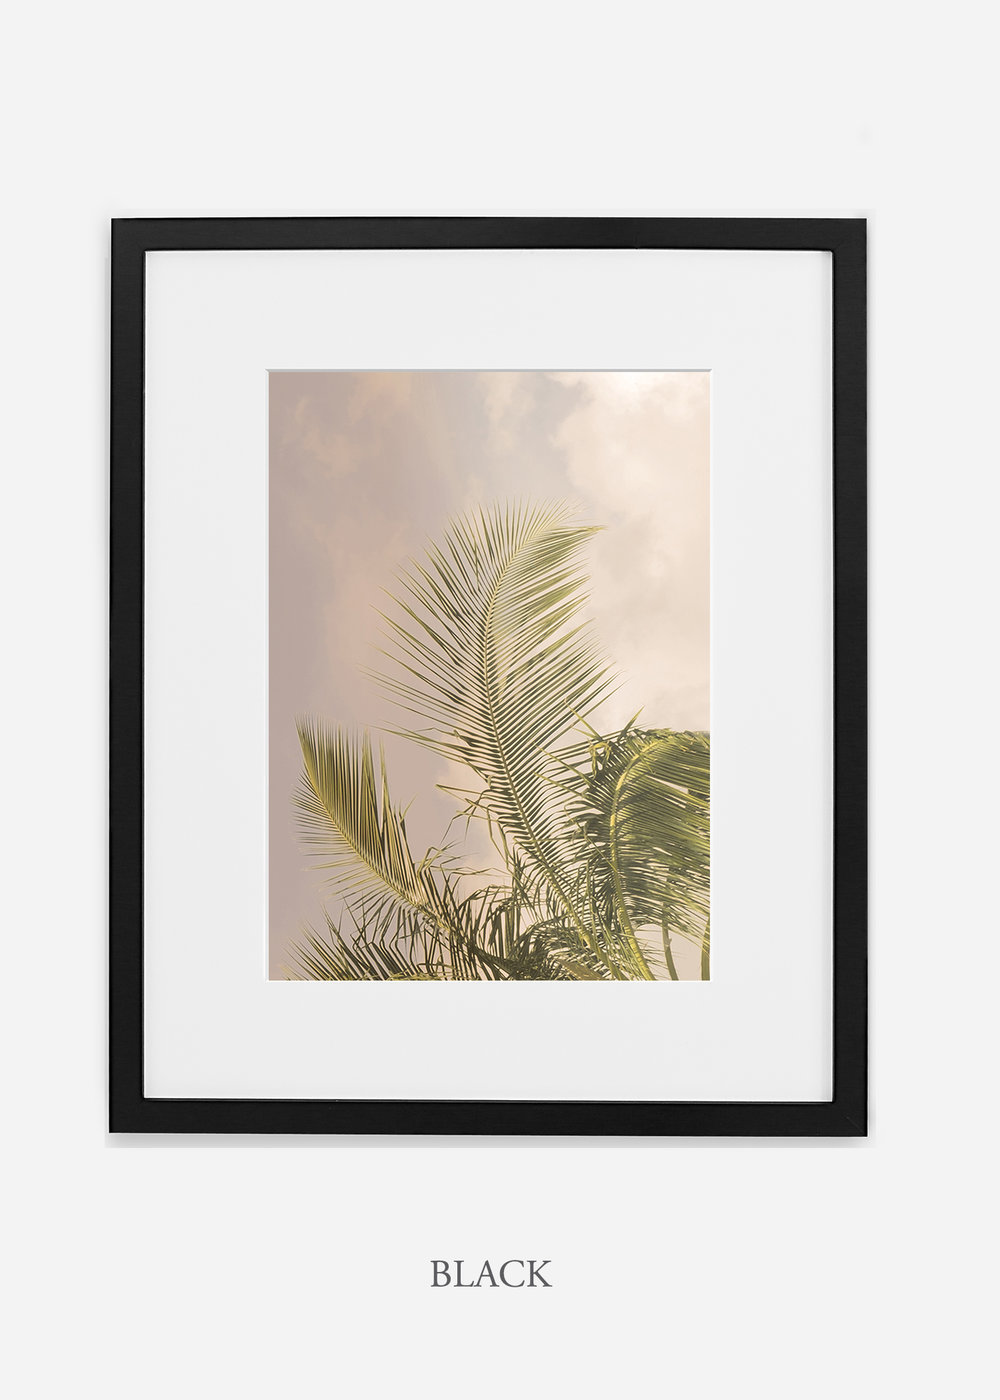 WilderCalifornia_PalmTree_Art_Photography_interiordesign_blackframe.jpg